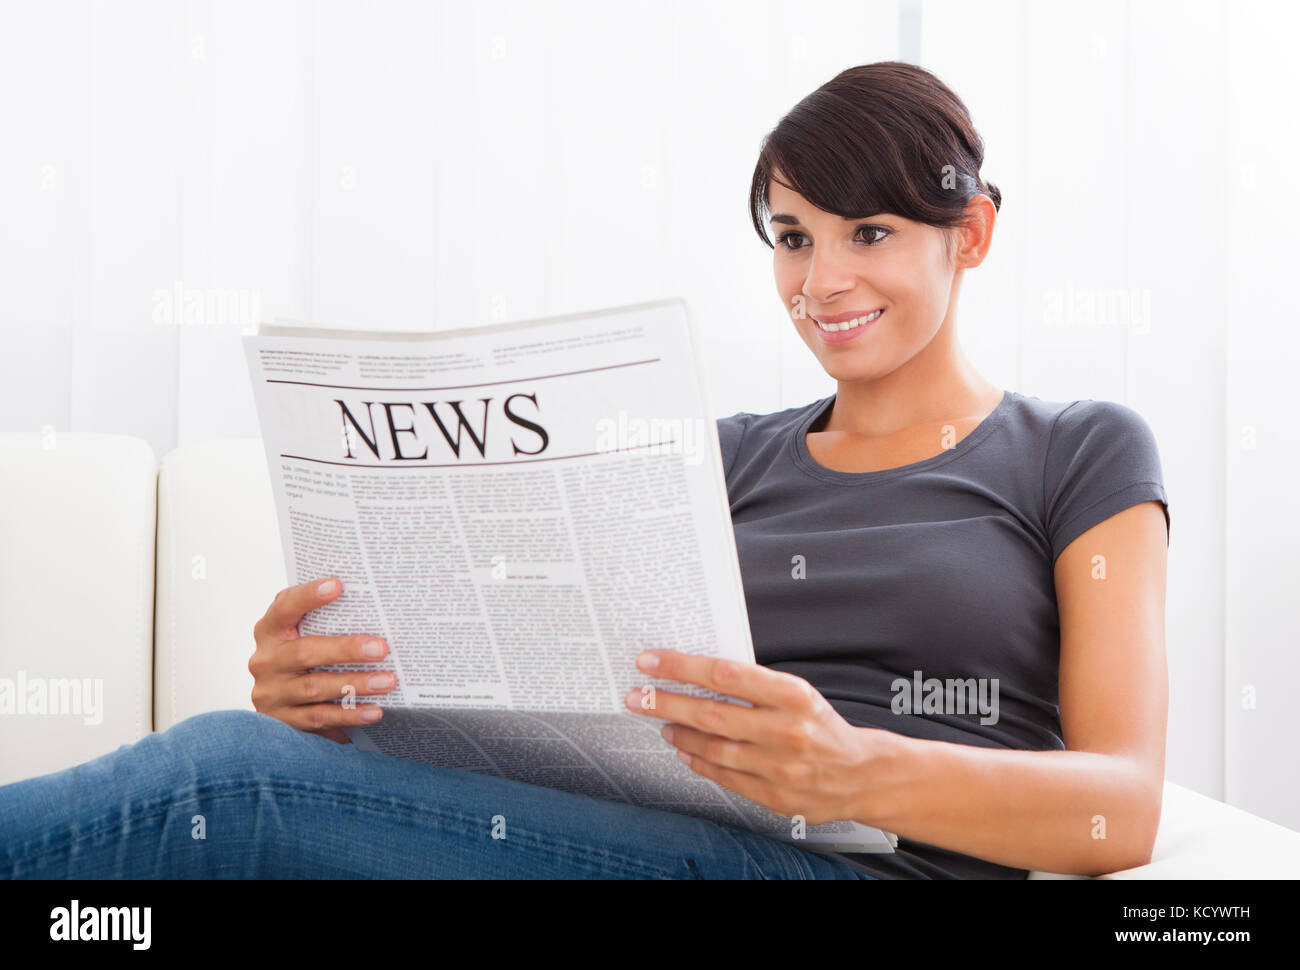 Young Female Reading Daily Newspaper Stock Photos & Young ...